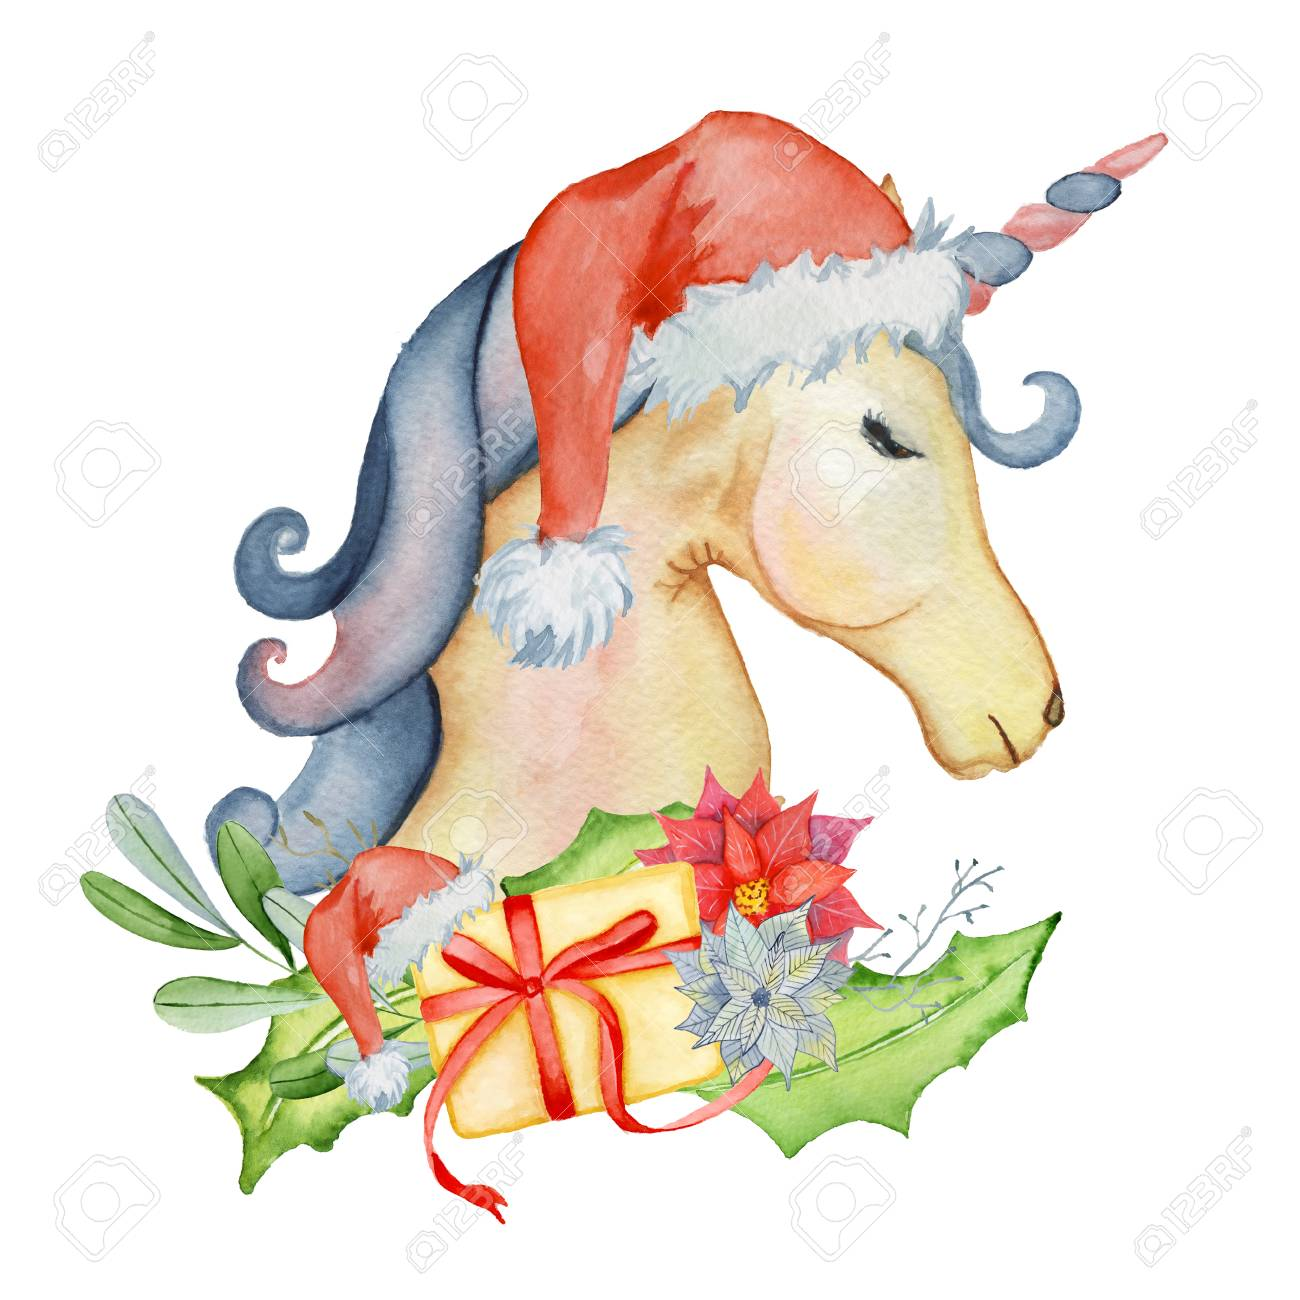 Christmas Horse Cartoon.Stock Illustration